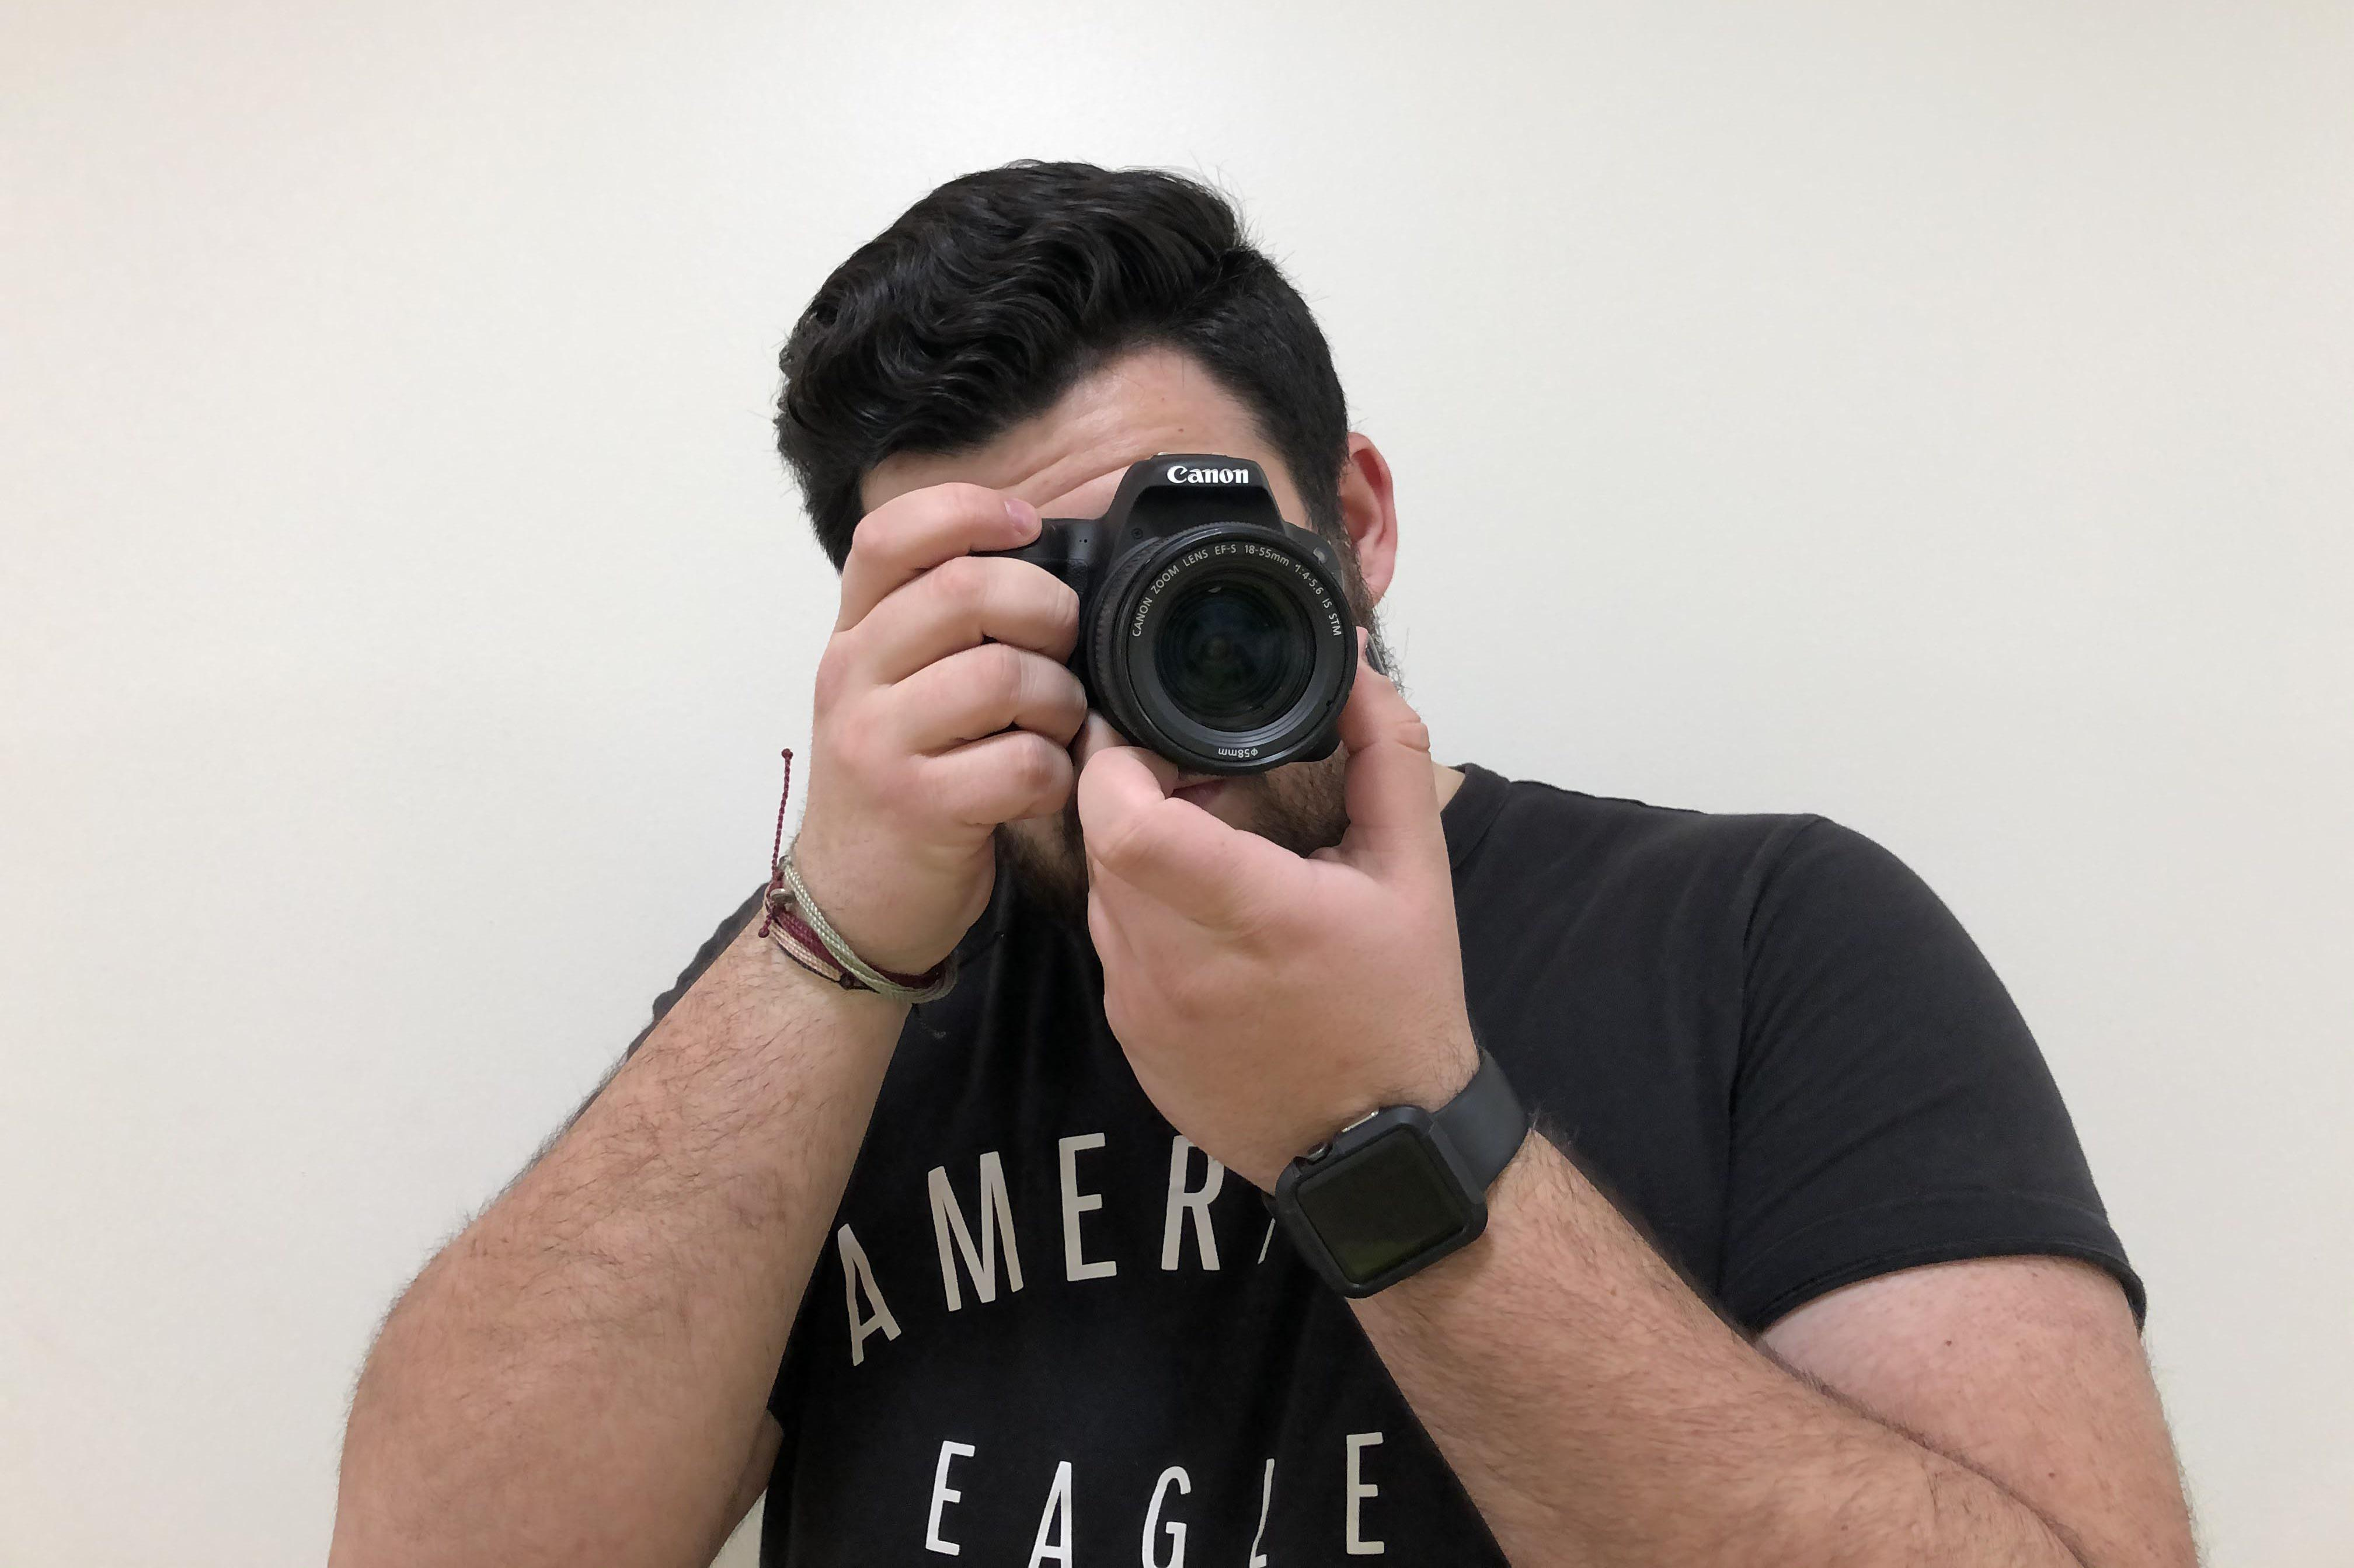 Anthony Carbonetta holding a camera to shoot a short film